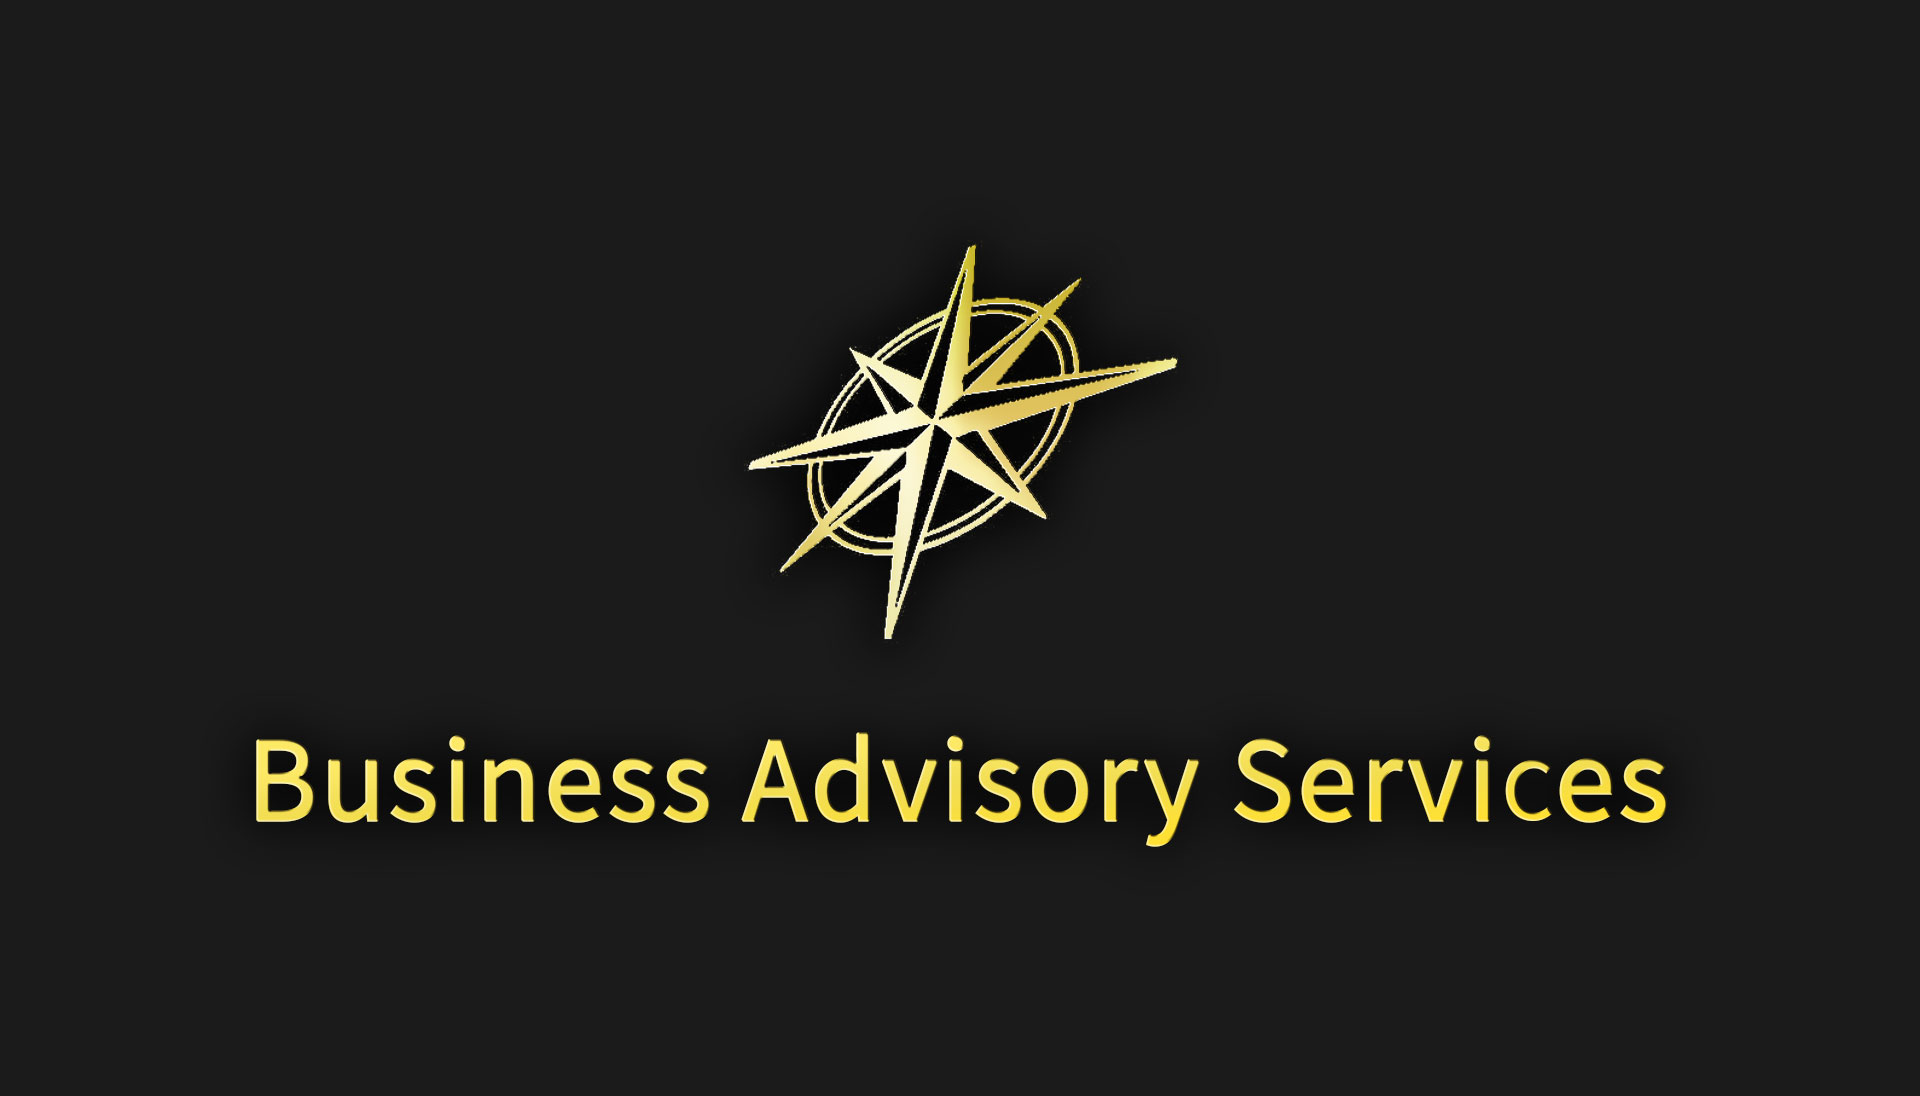 GCI Business Advisory Services